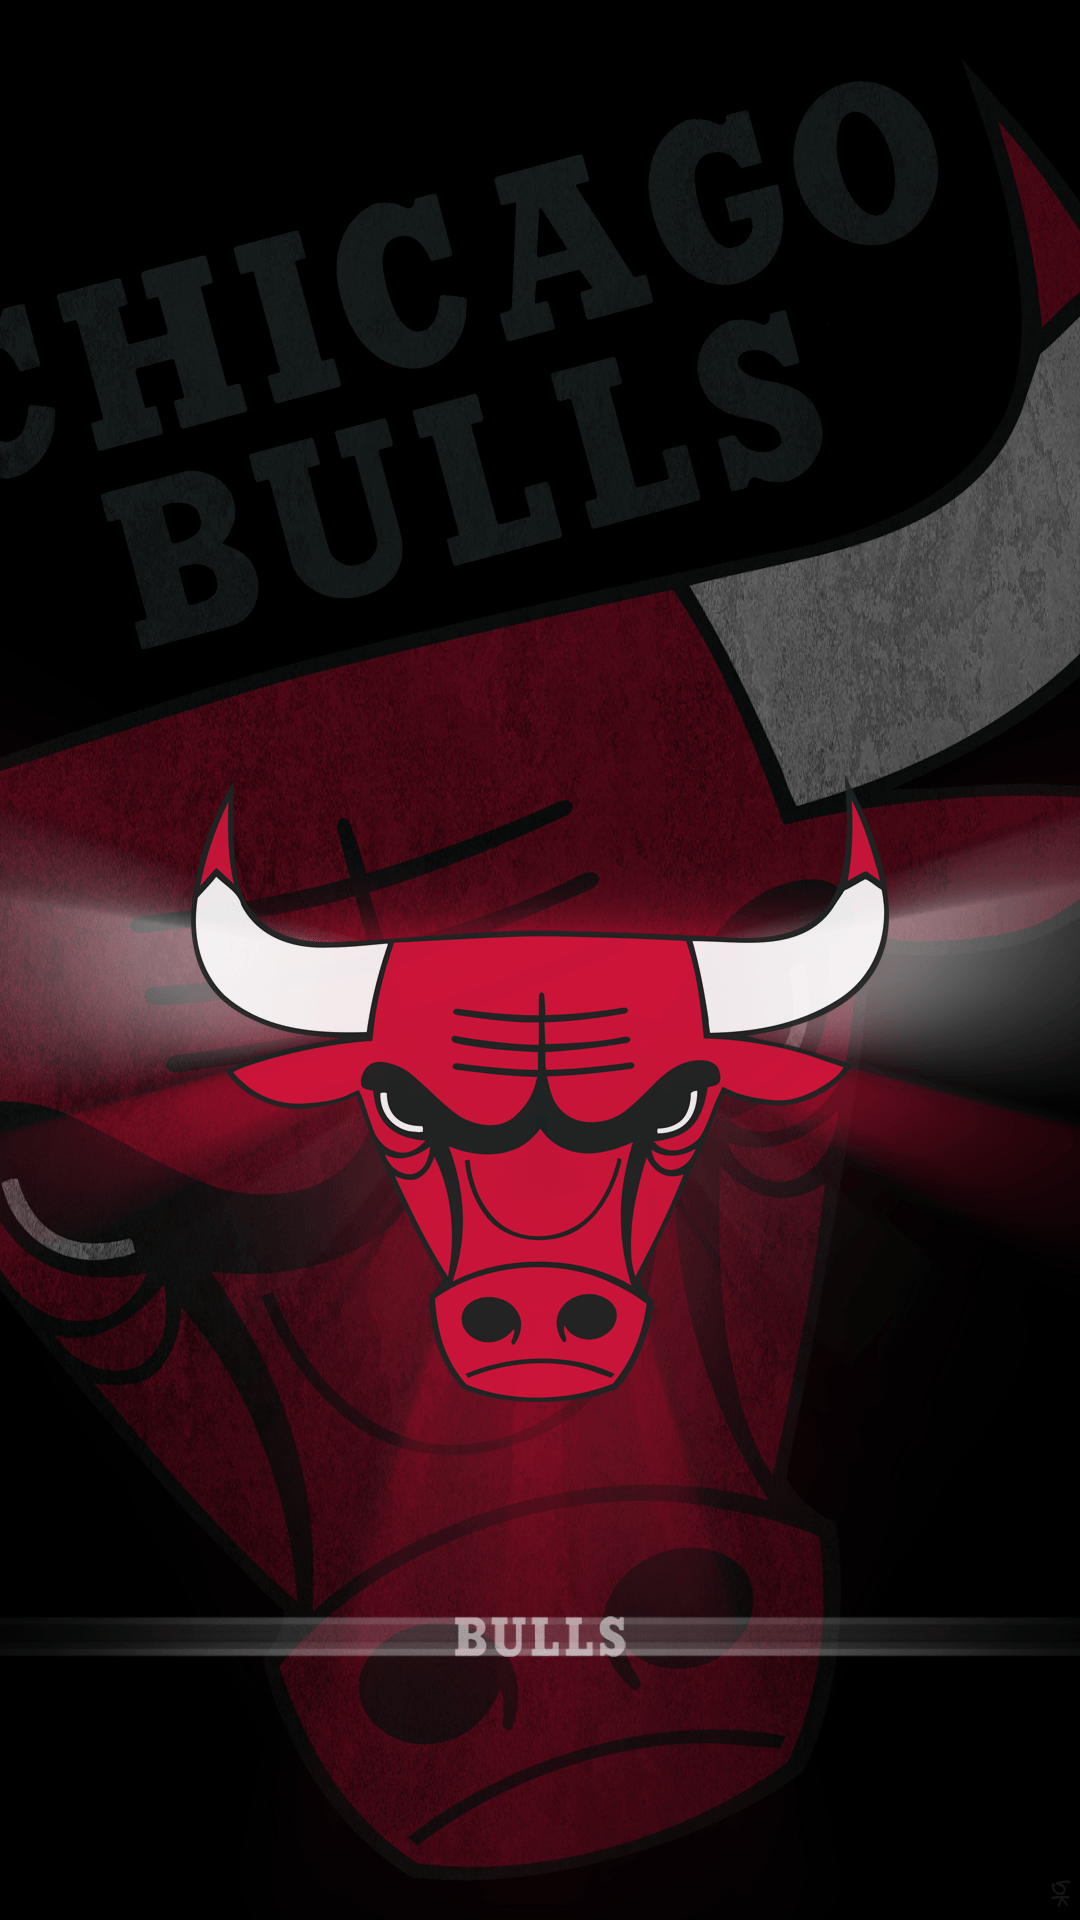 Chicago Bulls Iphone Wallpapers Free Download